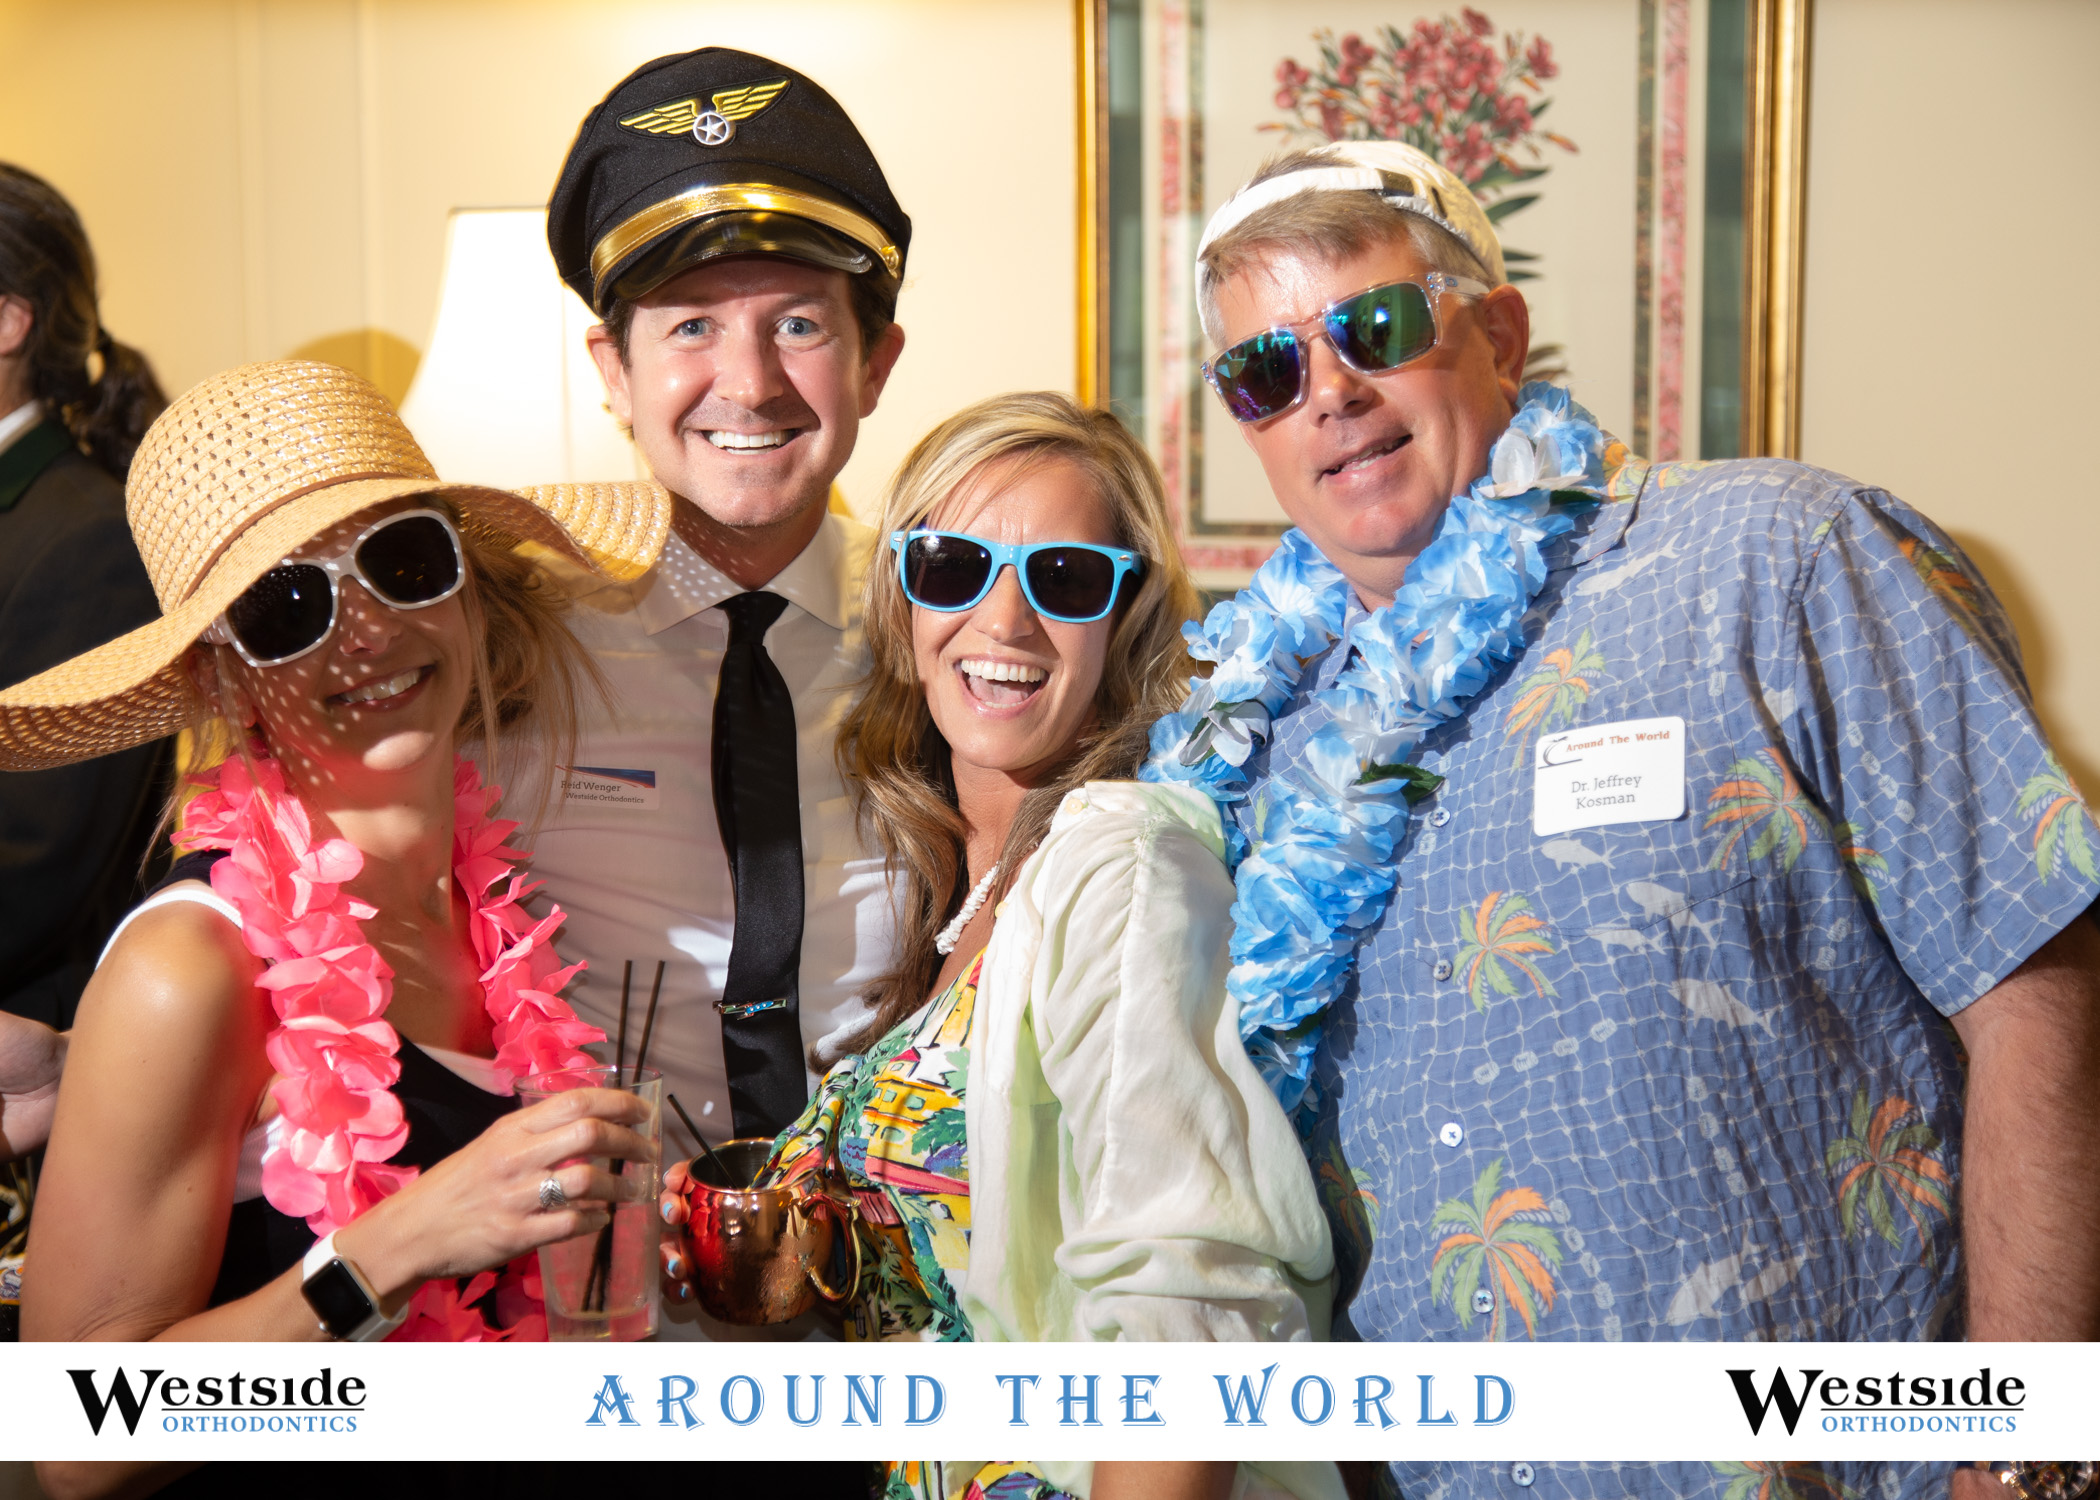 Click the image above or the link below to view the Event Photo Gallery   https://photos.dalemcdonaldphotographer.com/Business/Westside-Orthodontics/2019-Annual-Party/Event-Photos/